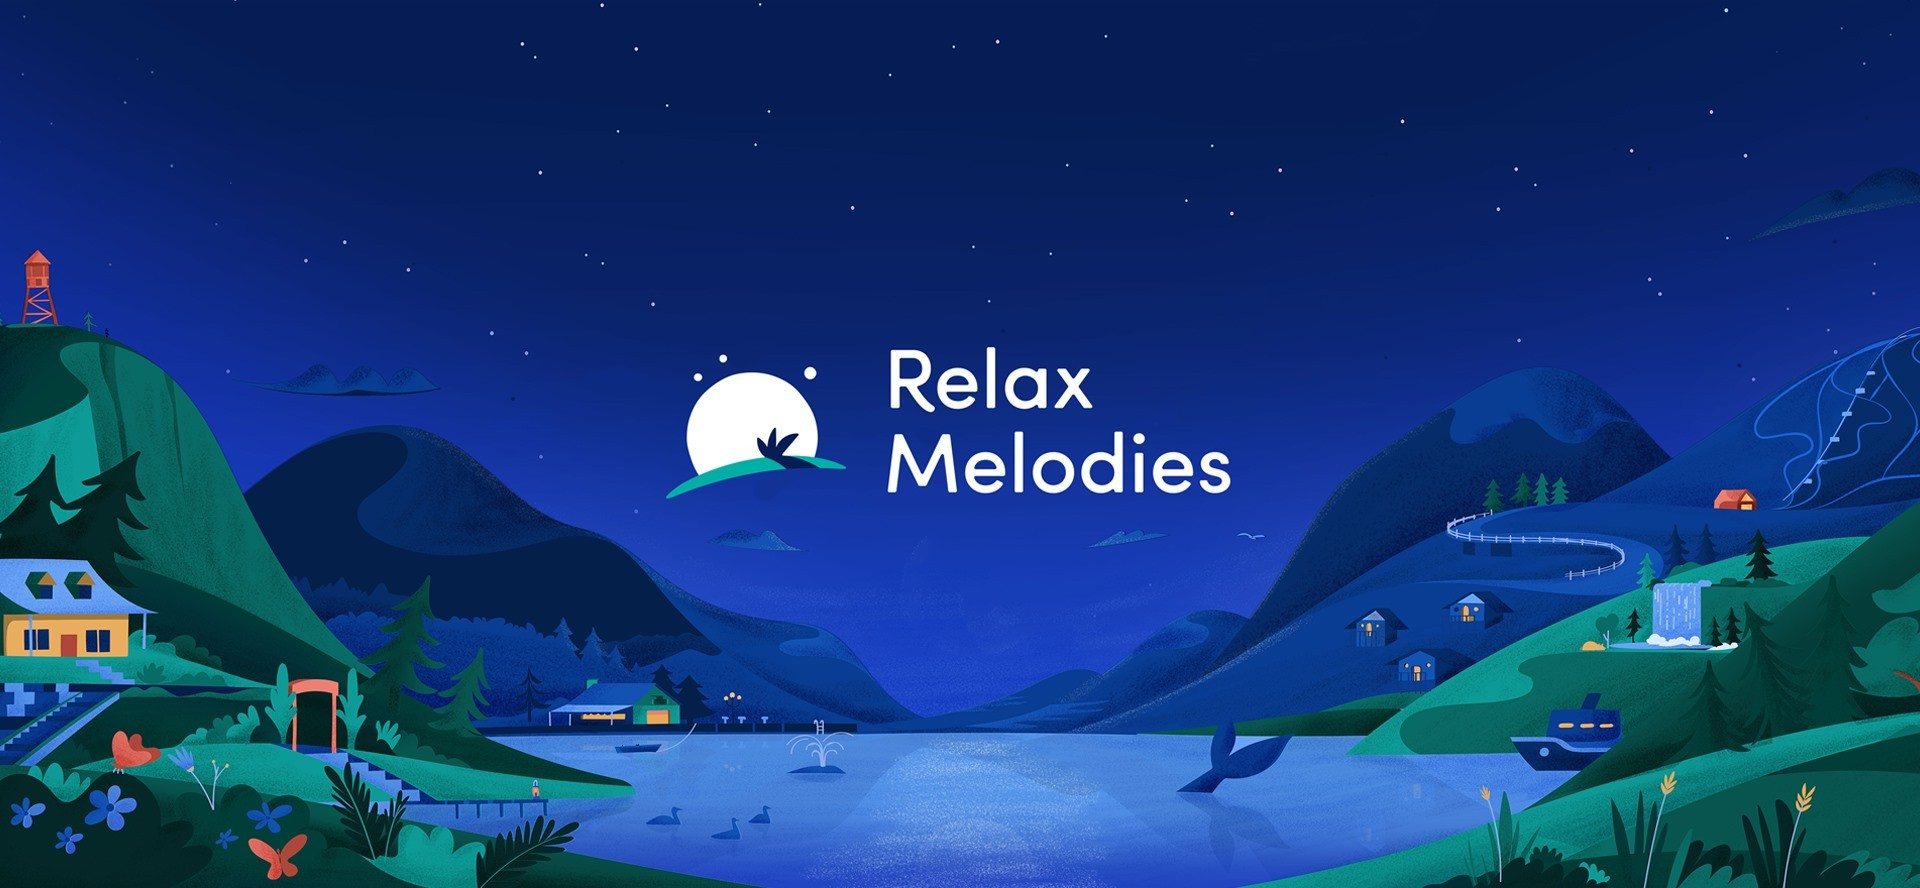 Relax Melodies Banner